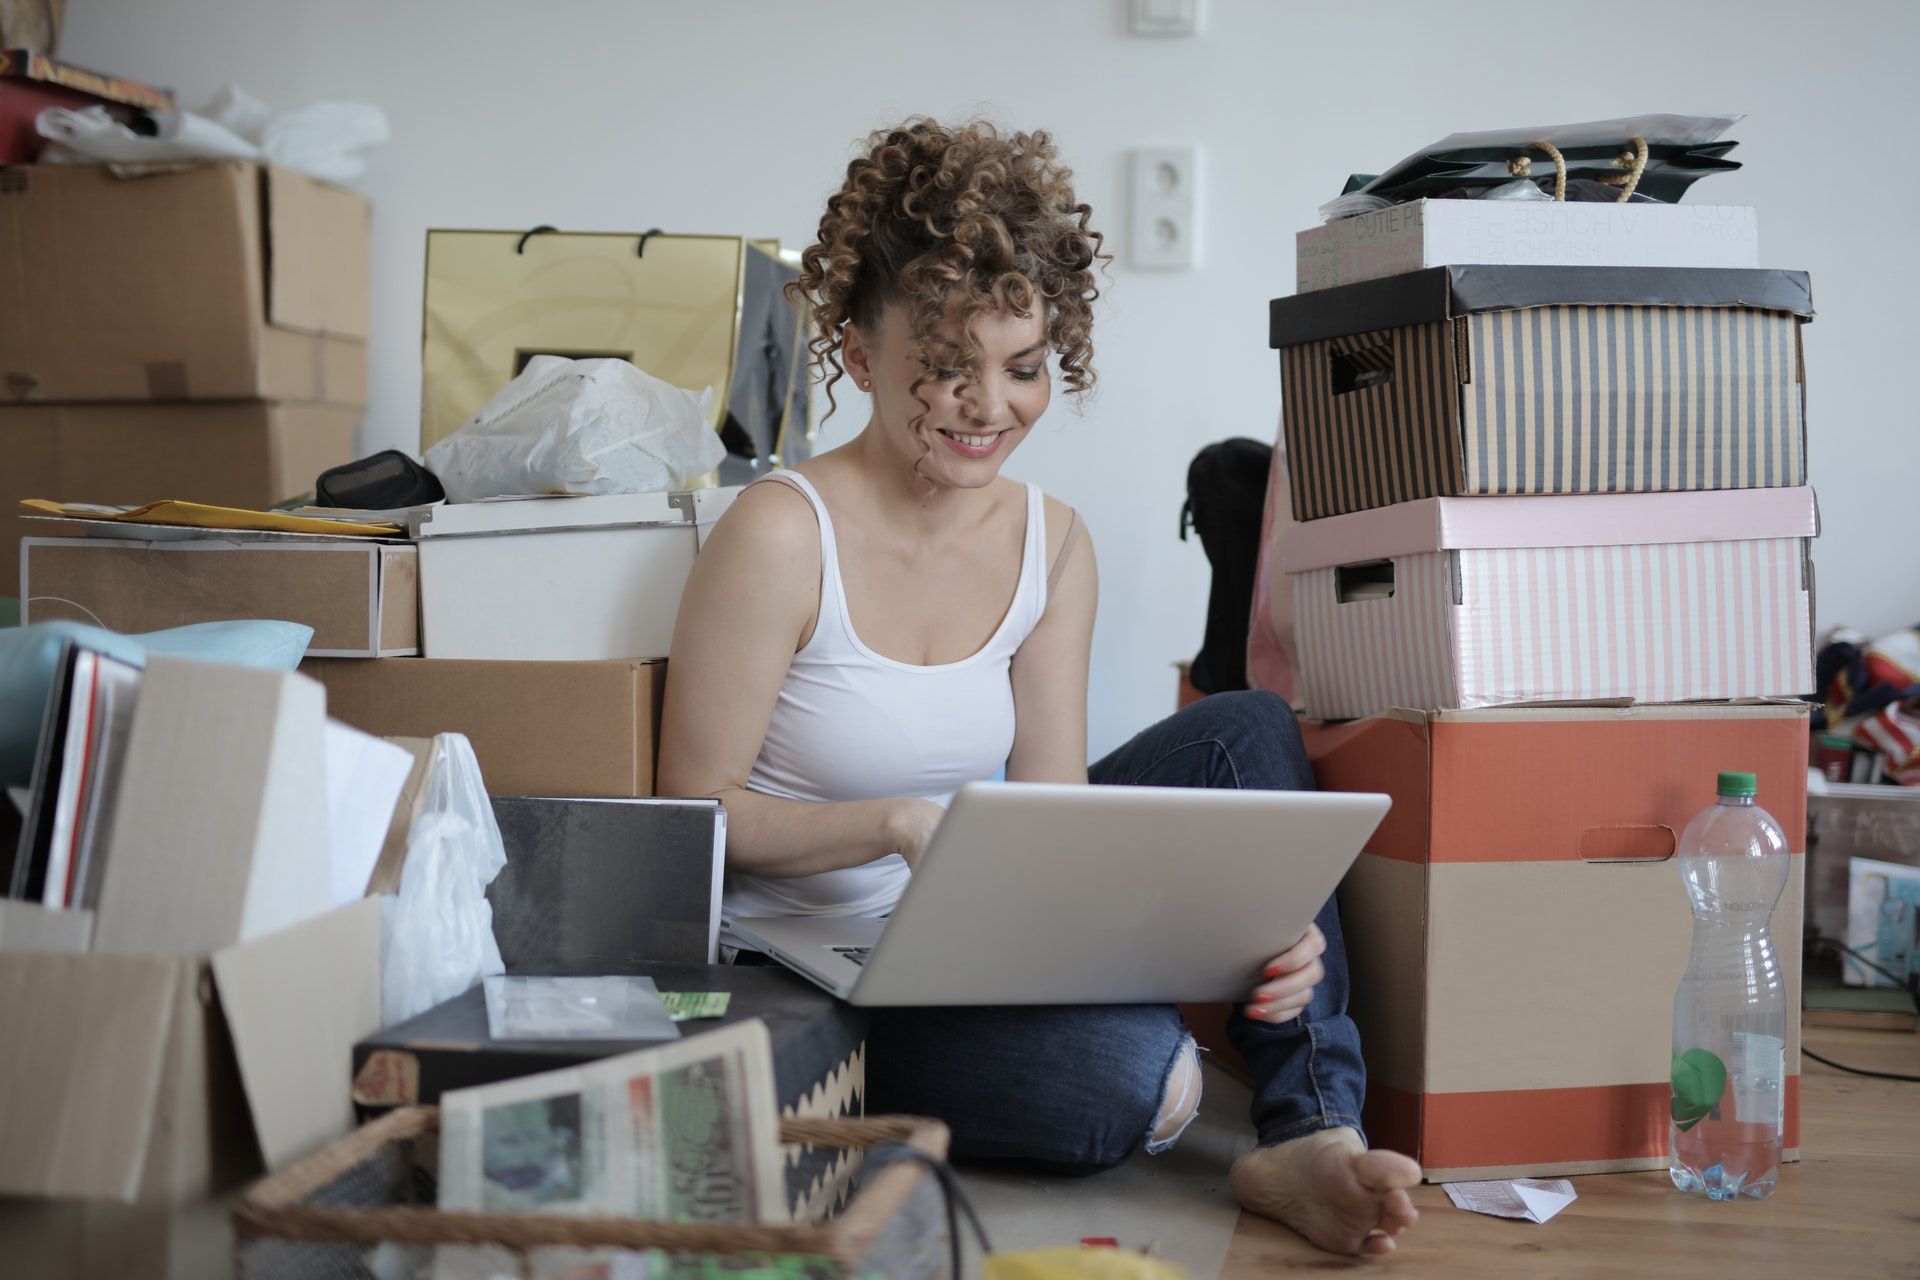 Woman online shopping on floor